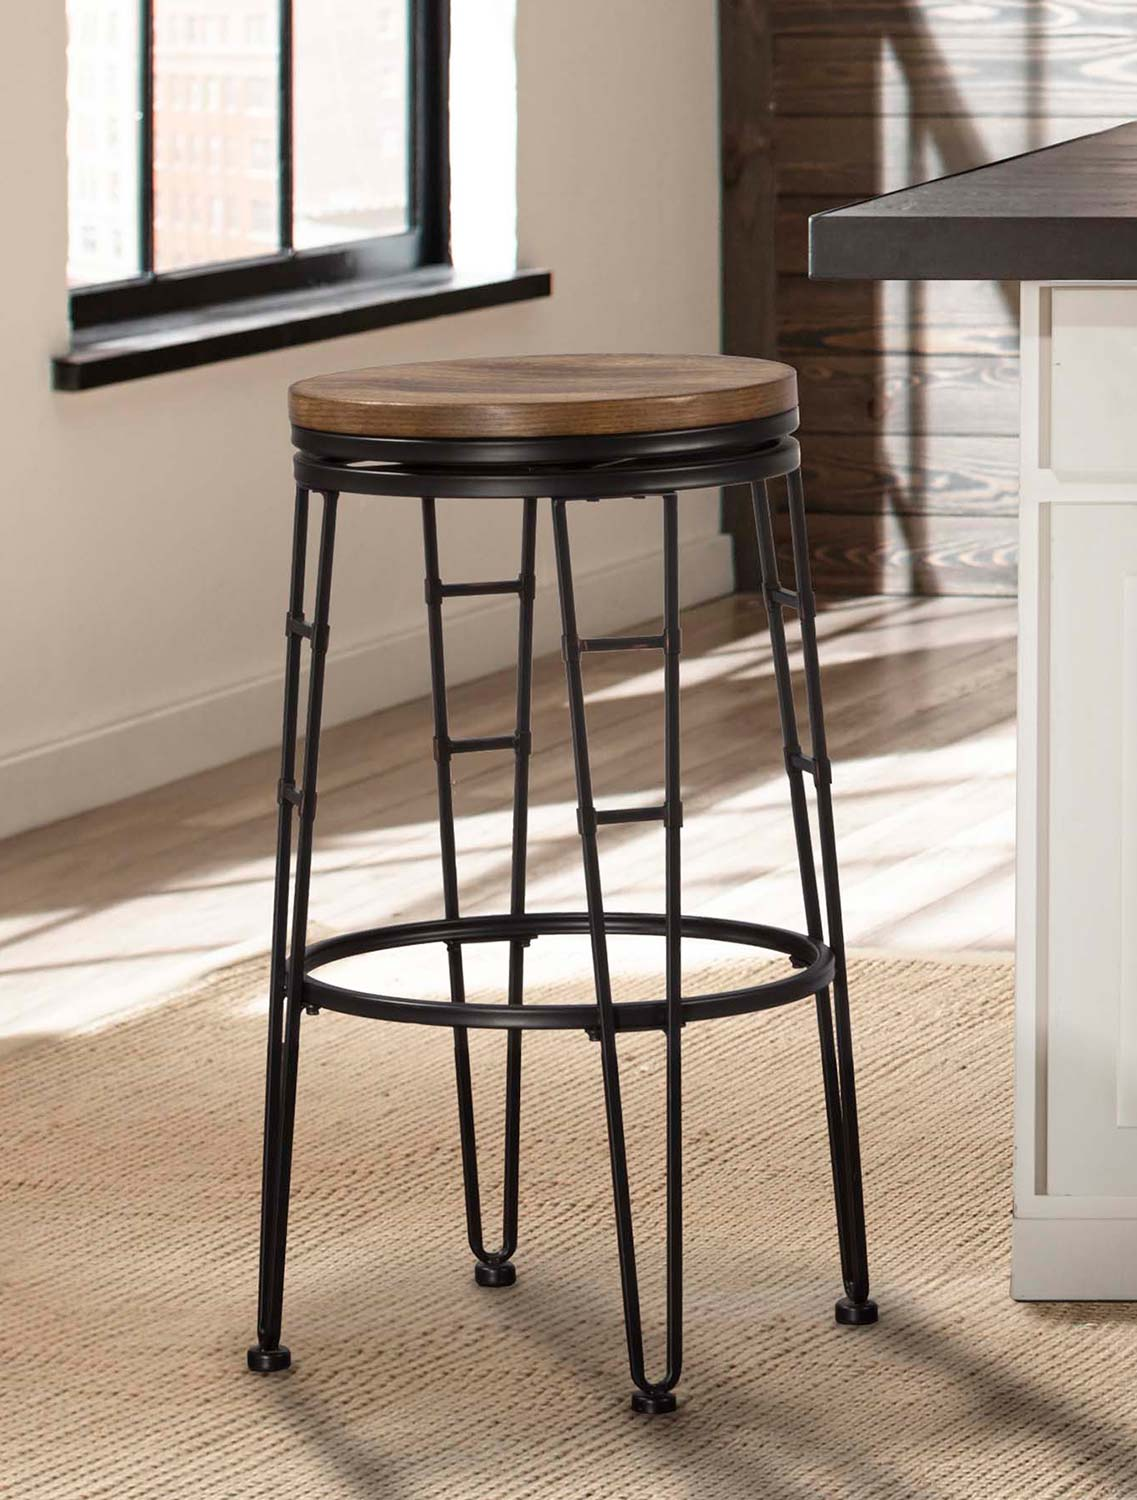 Hillsdale Northpark Backless Swivel Counter Stool - Chestnut